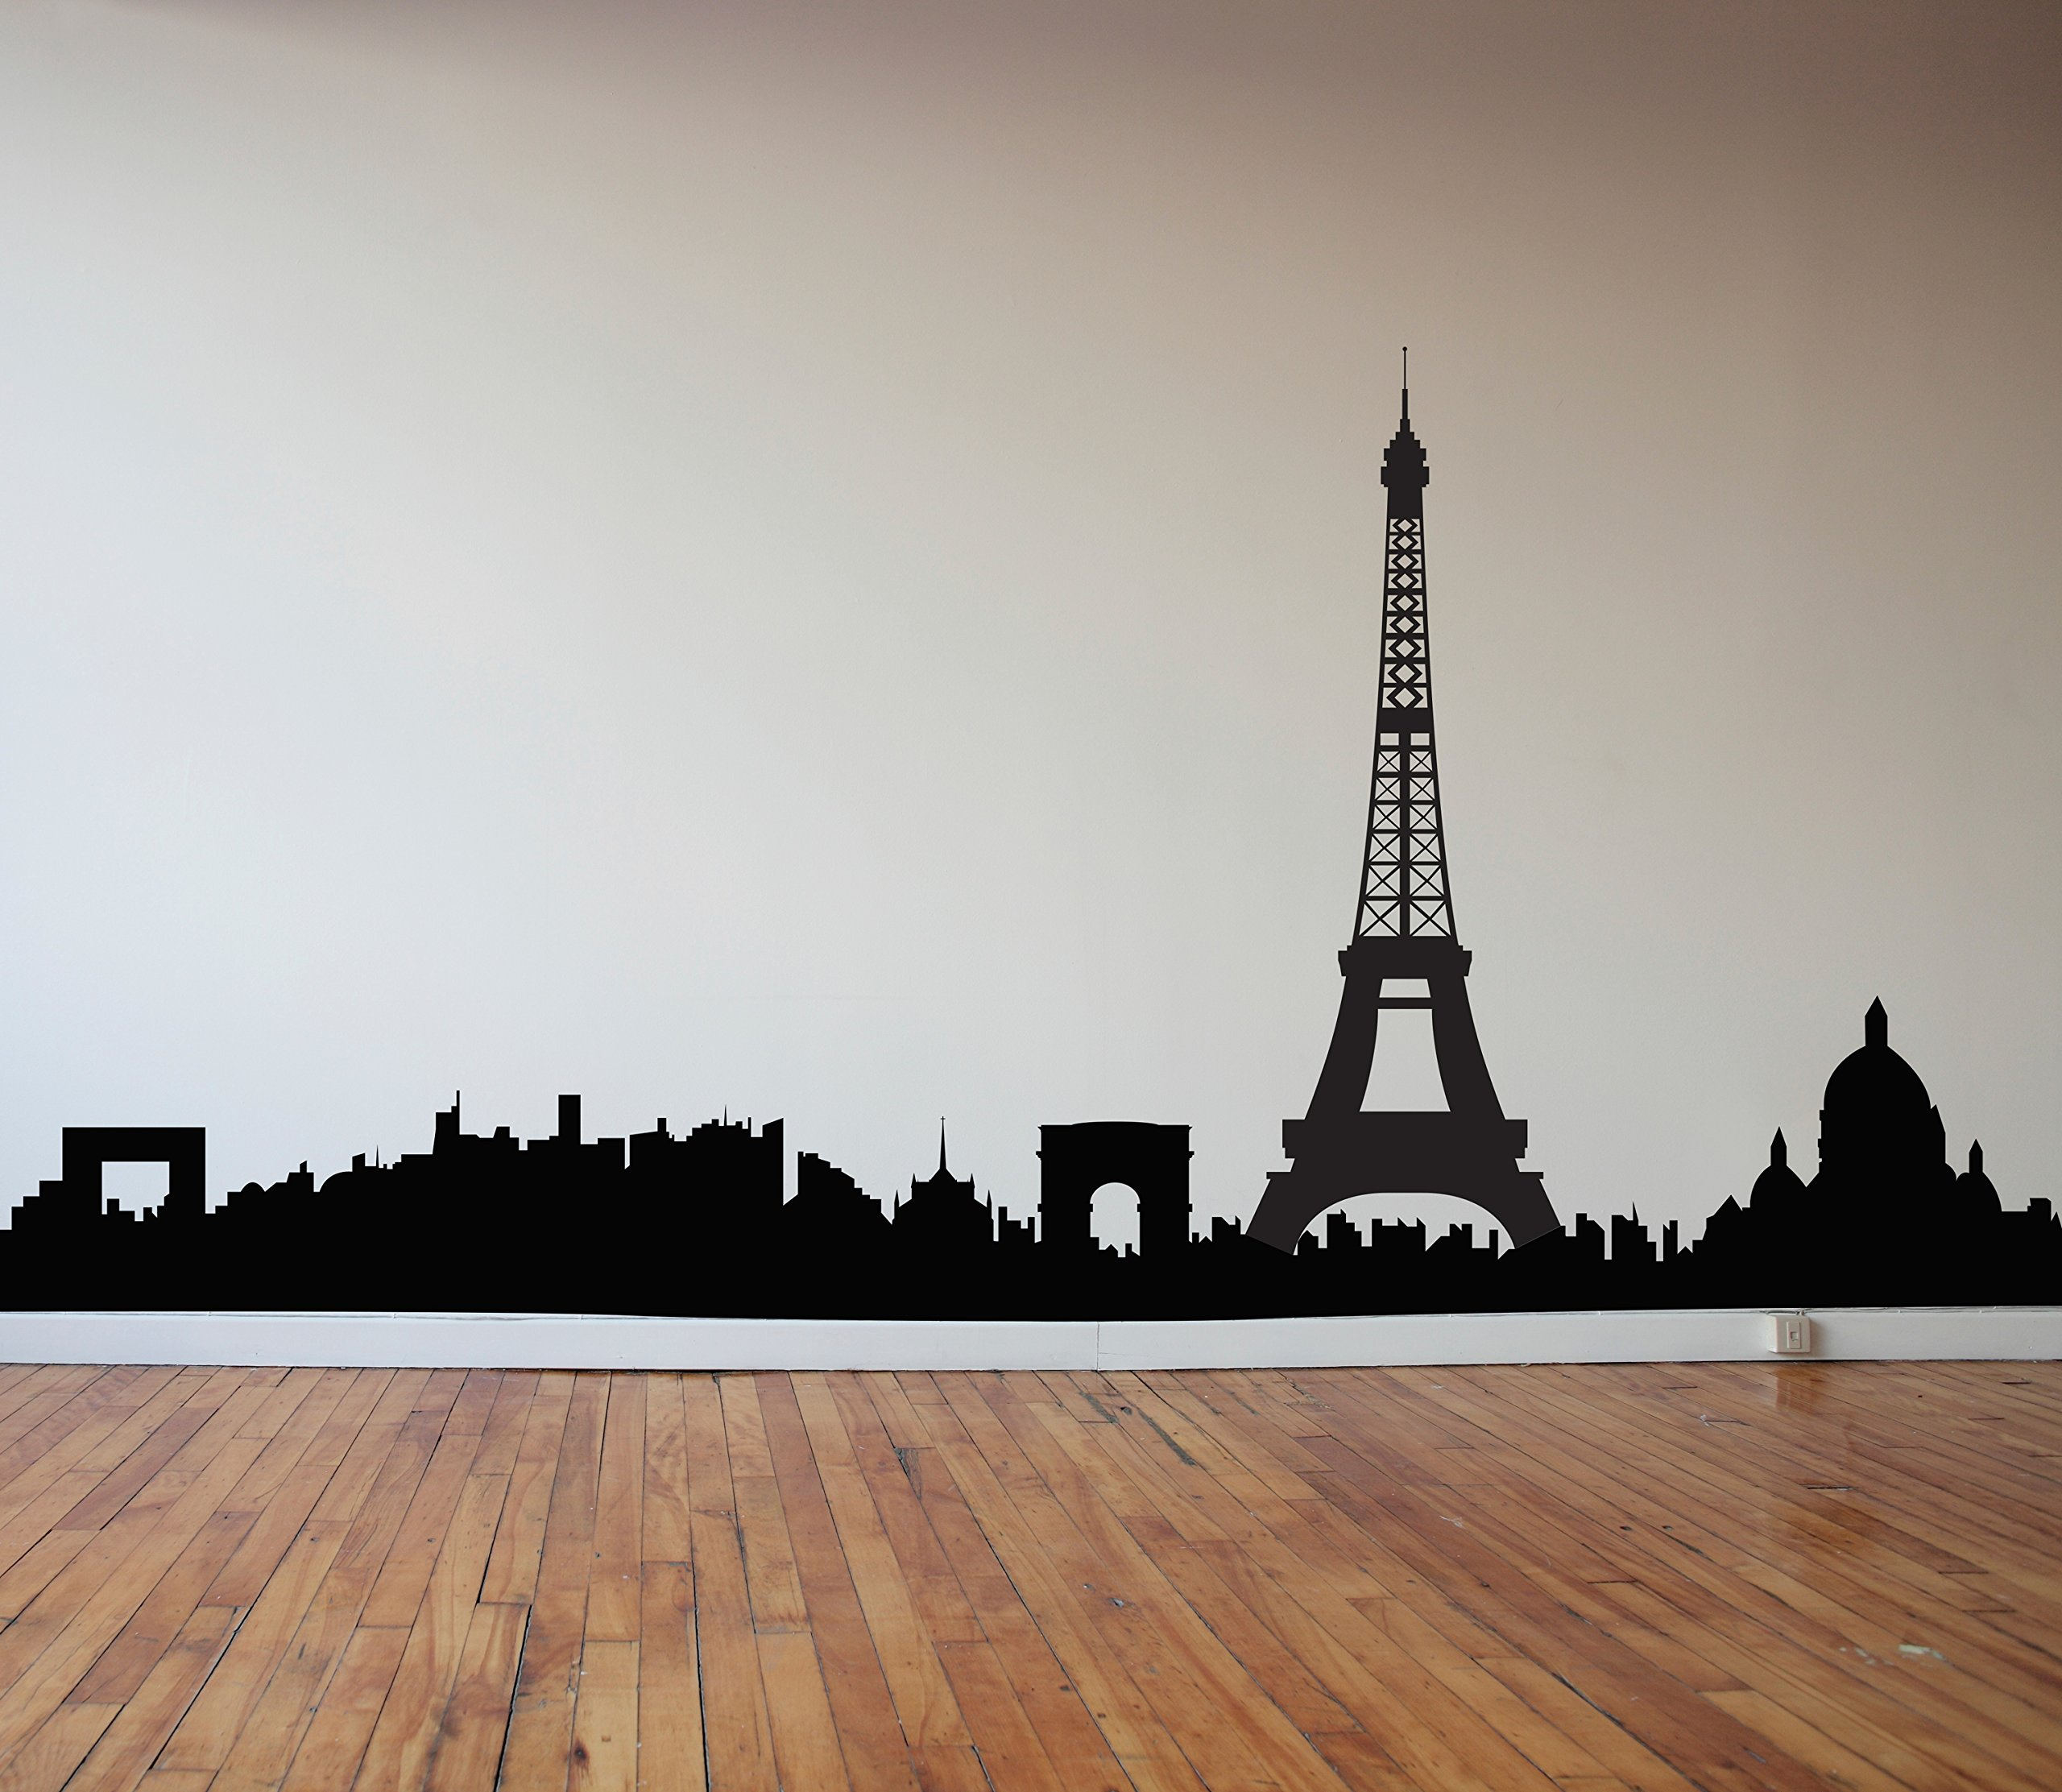 Paris Skyline with Eiffel Tower - Black - Vinyl Wall Art Decal for Homes, Offices, Kids Rooms, Nurseries, Schools, High Schools, Colleges, Universities, Interior Designers, Architects, Remodelers by Dana Decals (Image #1)